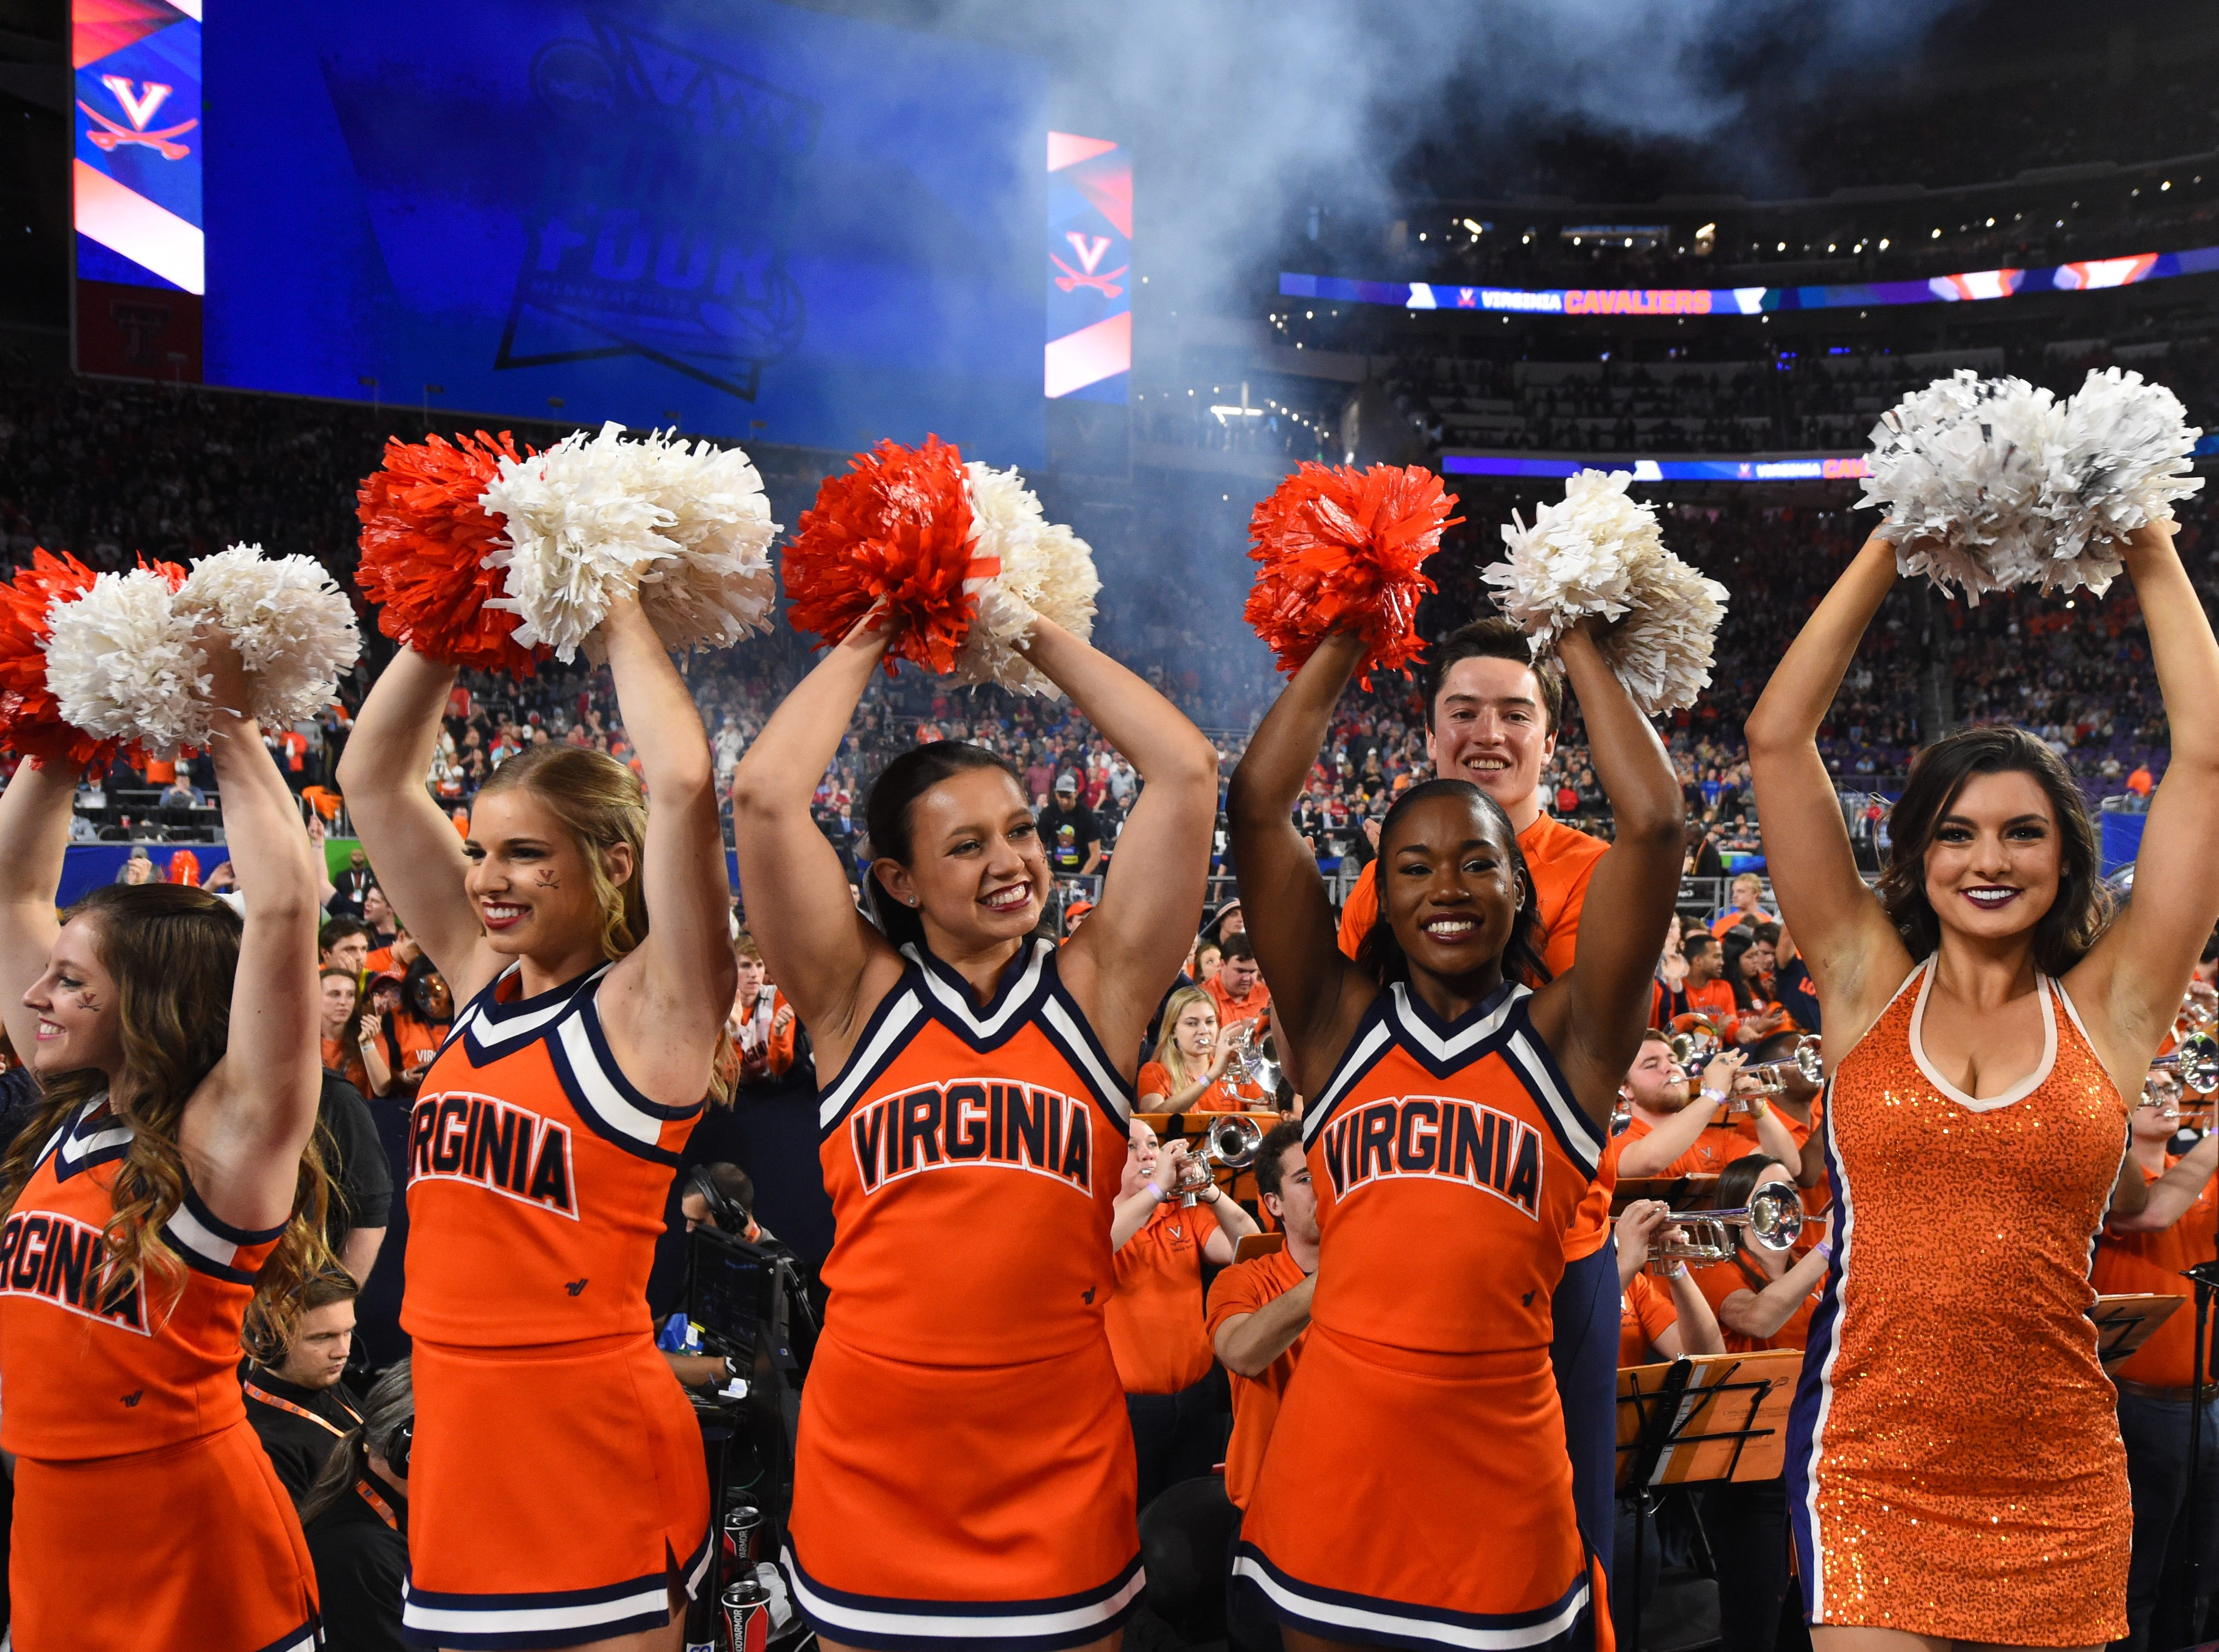 Apr 8, 2019; Minneapolis, MN, USA; Virginia Cavaliers cheerleaders prior to facing the Texas Tech Red Raiders in the championship game of the 2019 men's Final Four at US Bank Stadium. Mandatory Credit: Robert Deutsch-USA TODAY Sports